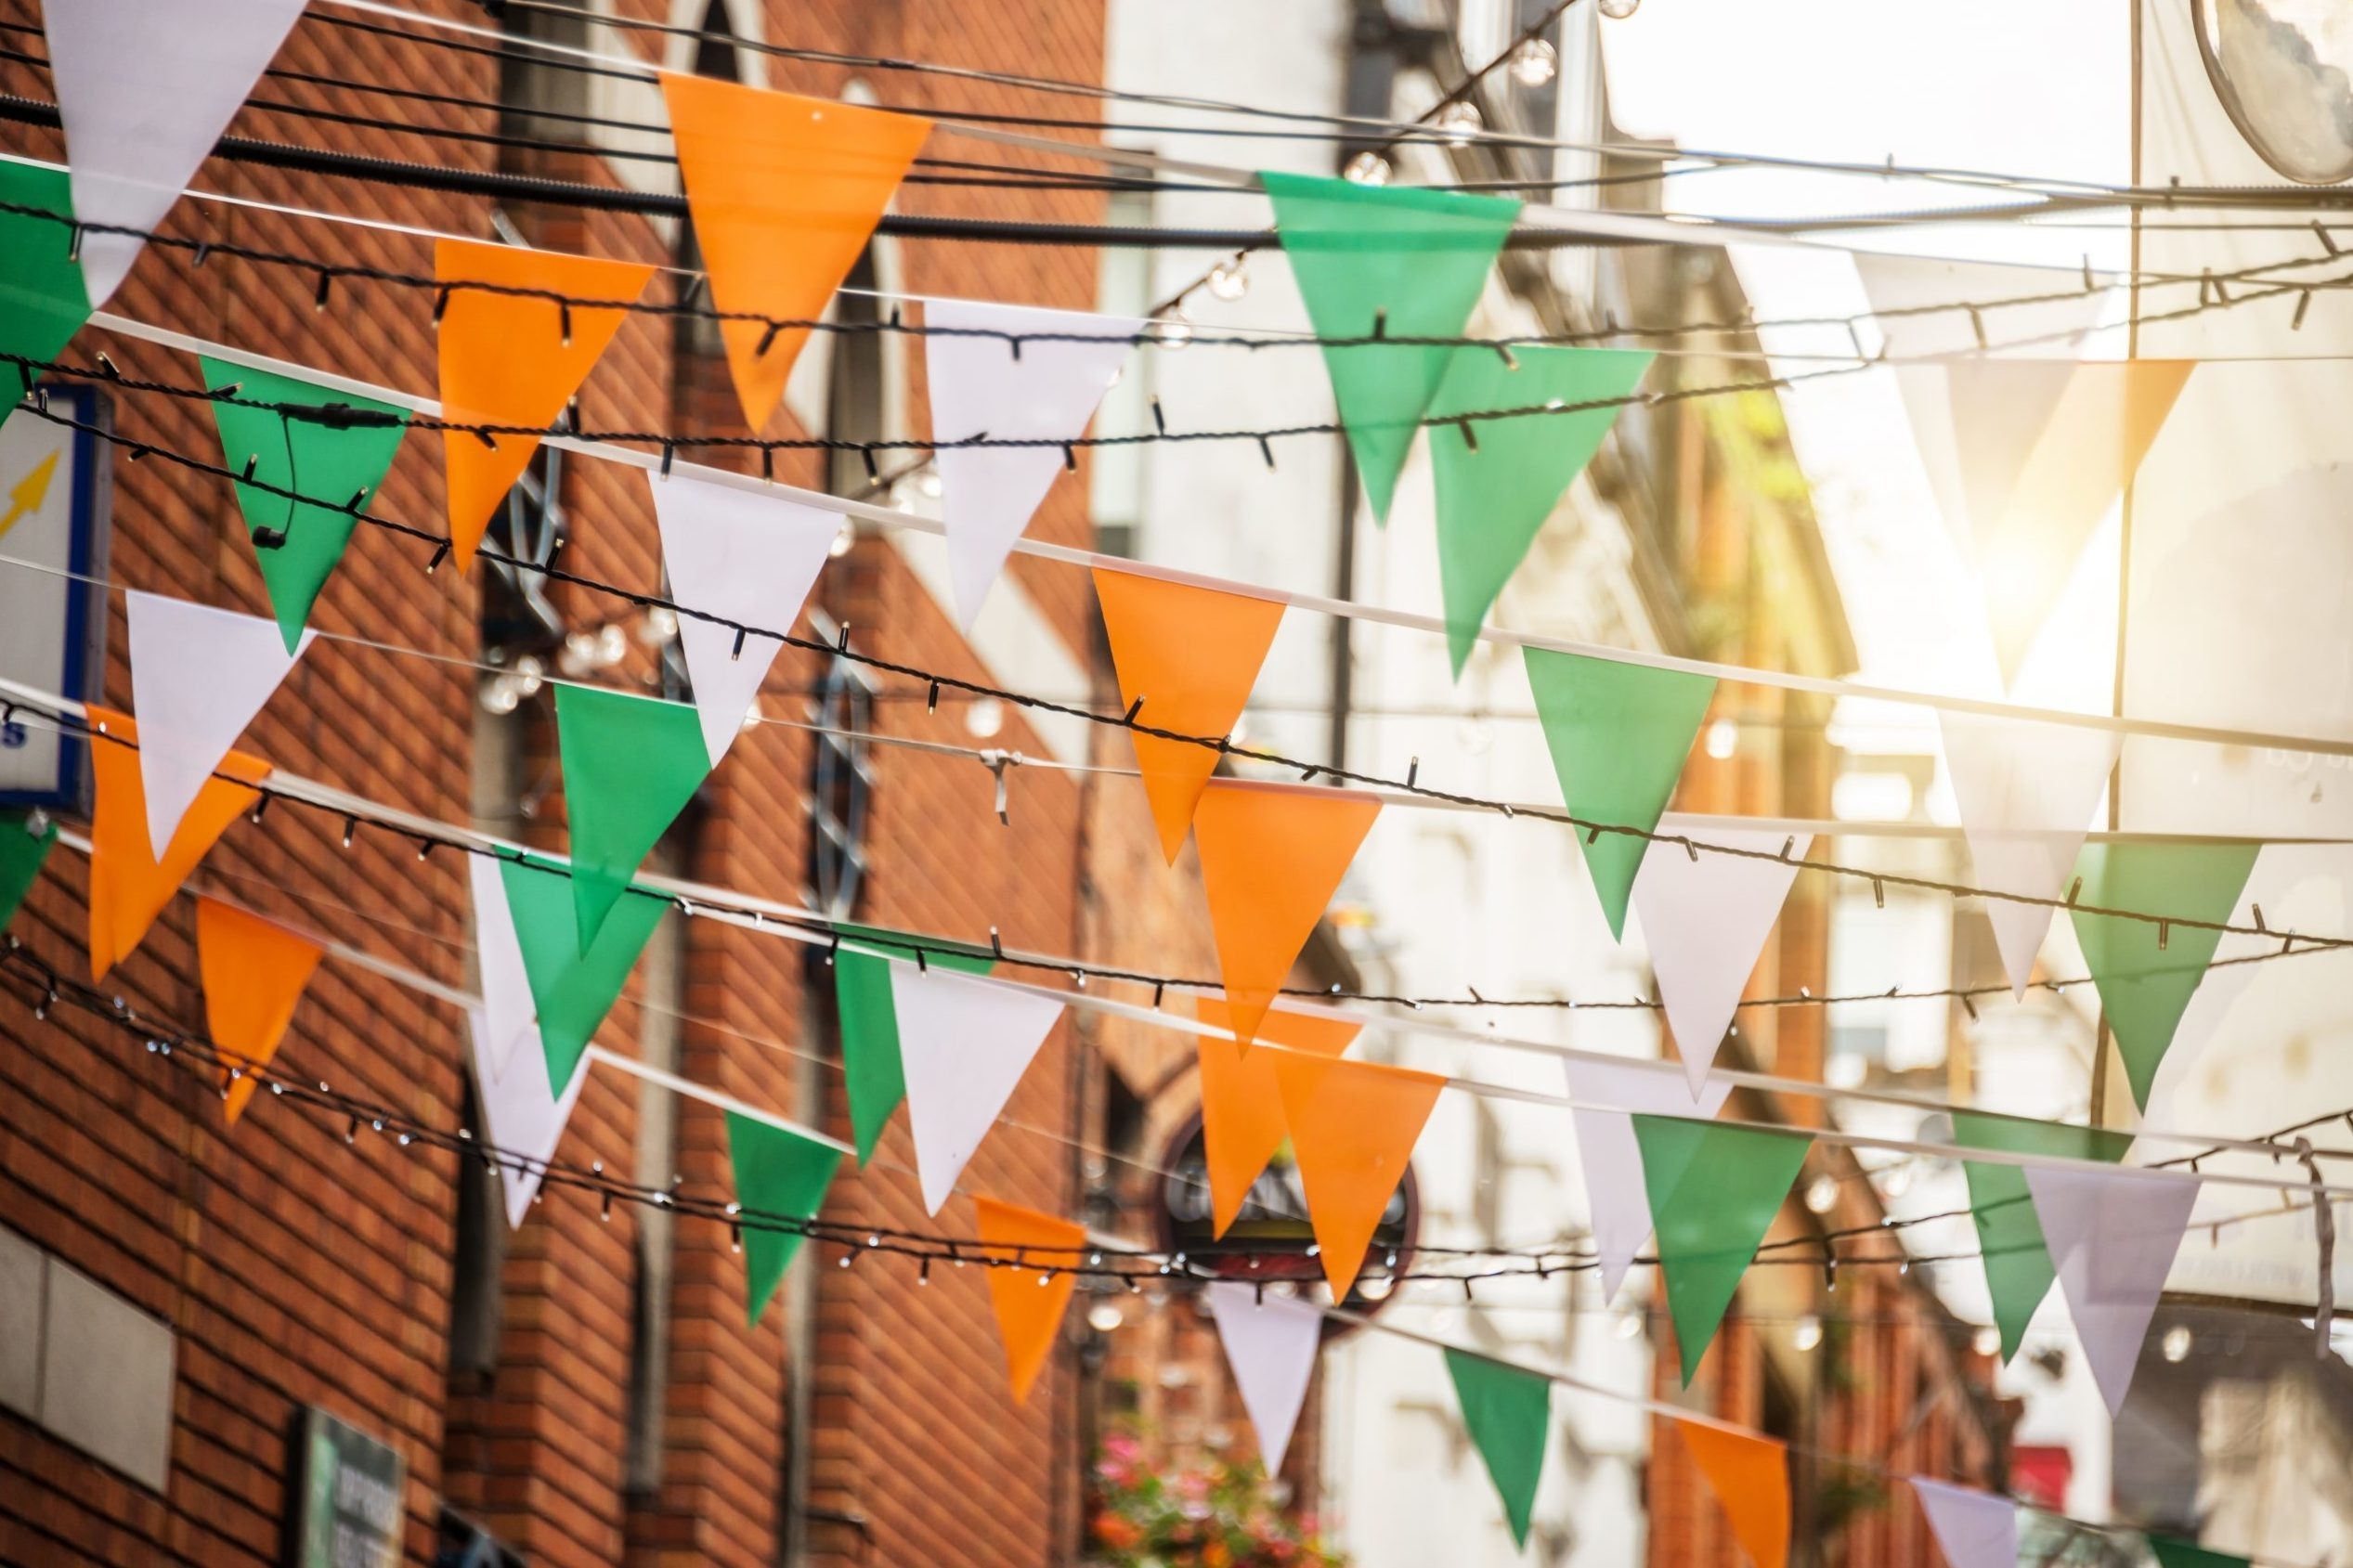 Garland with irish flag colors in a street of Dublin, Ireland - Saint Patrick day celebration concept. St. Patrick's Day fun facts.